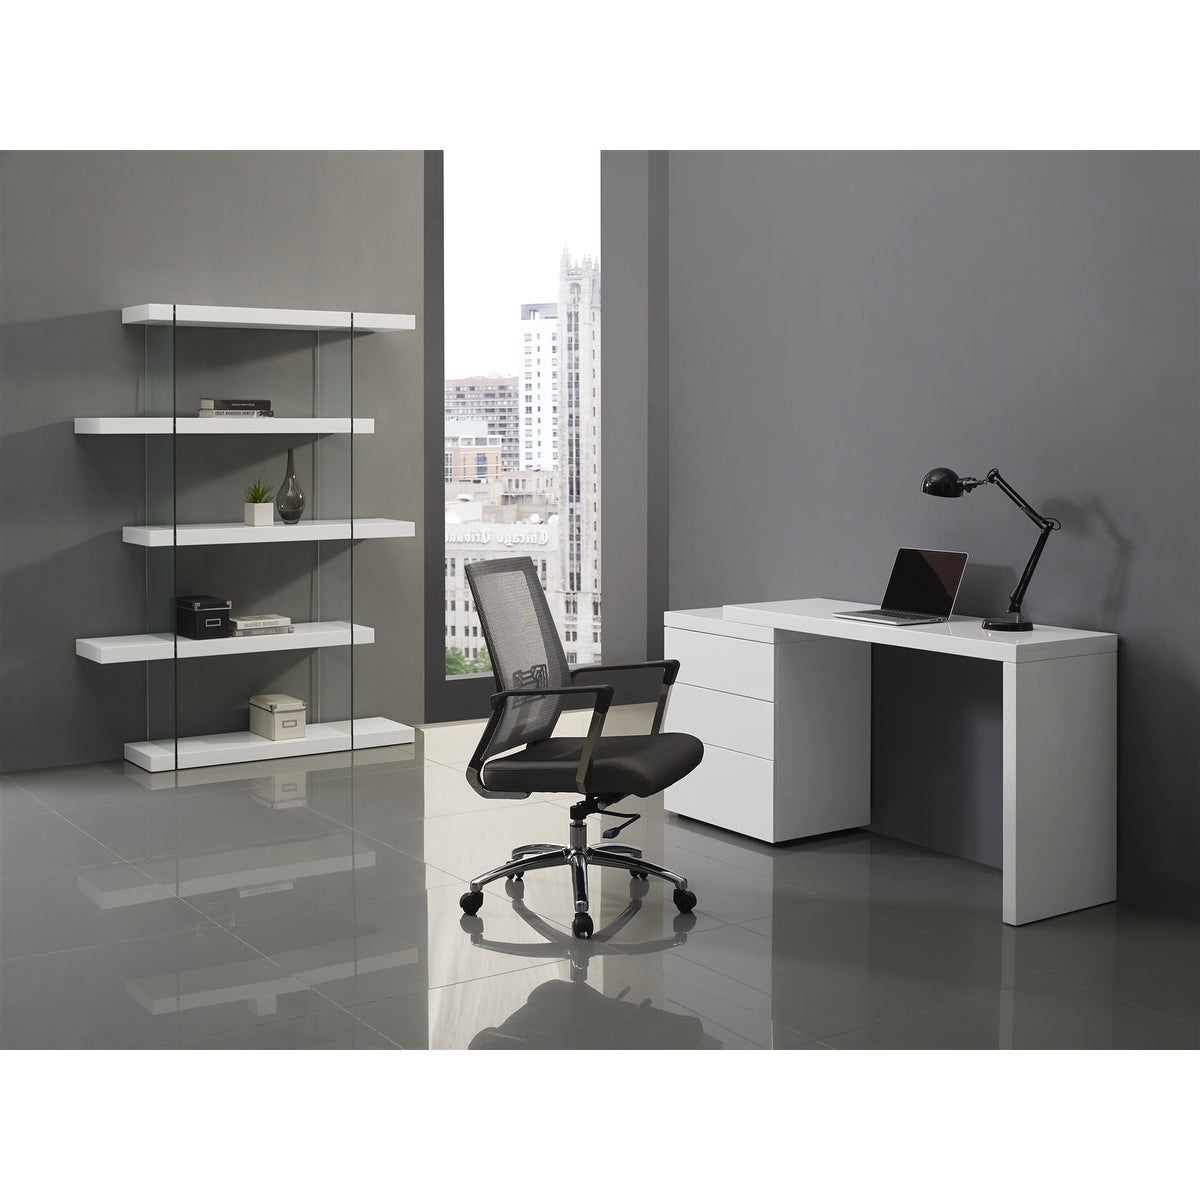 Awe Inspiring Nest High Gloss White Lacquer Extendable Office Desk By Casabianca Home Home Interior And Landscaping Pimpapssignezvosmurscom